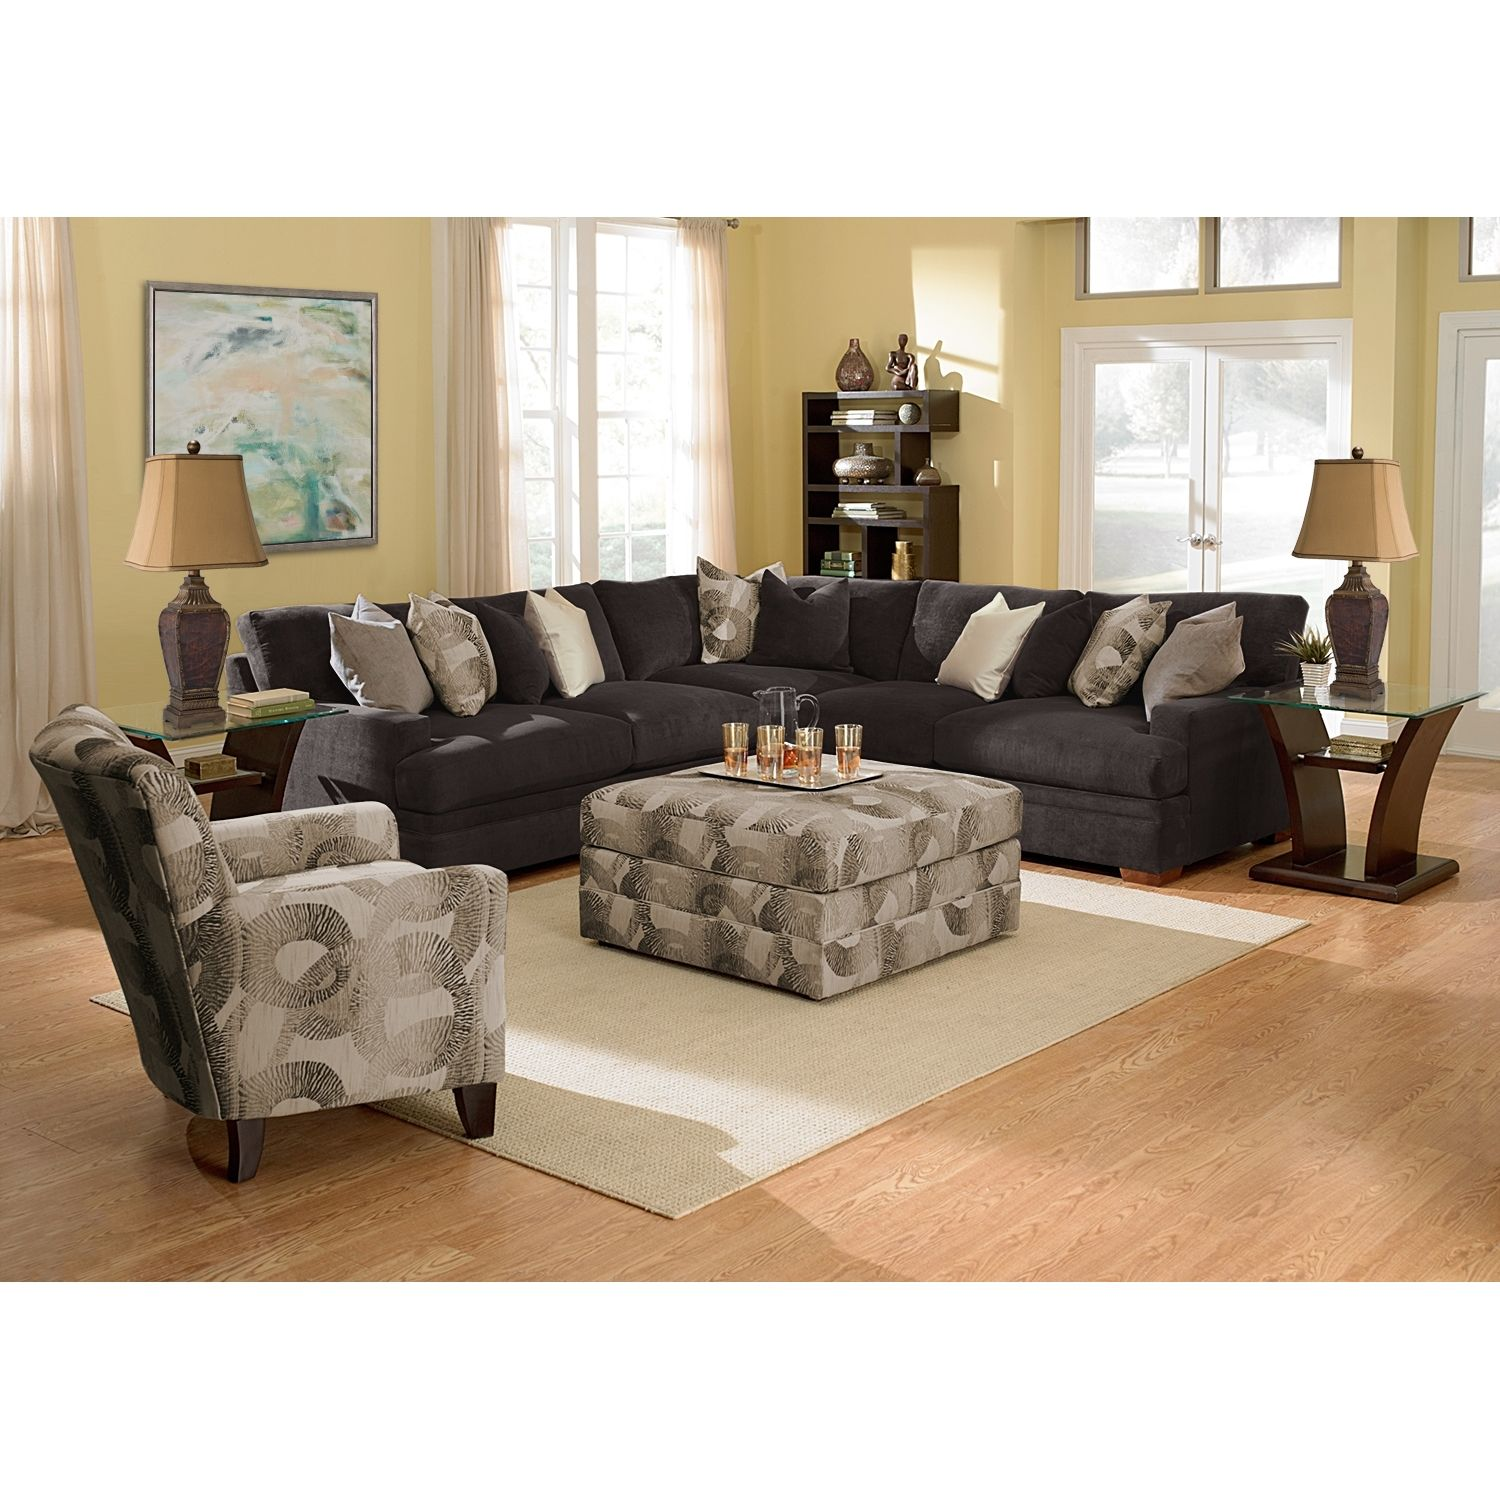 Altavista Upholstery 3 Pc Sectional Value City Furniture